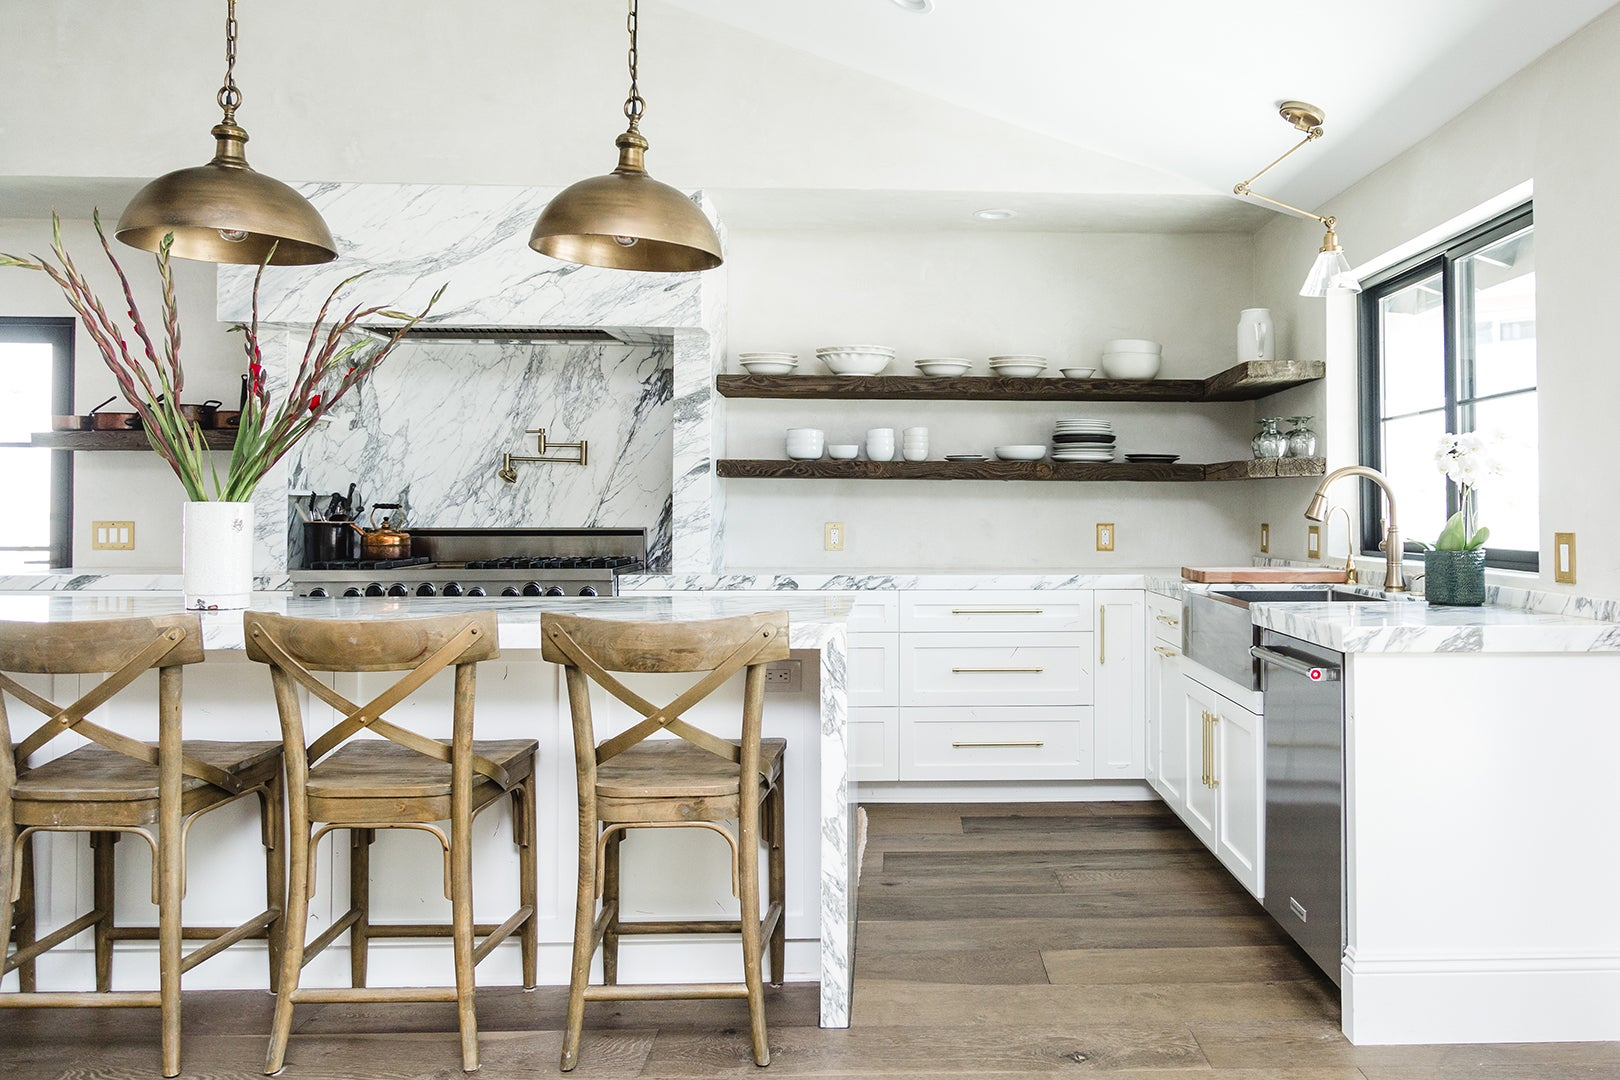 kitchen ilsnad with wood stools